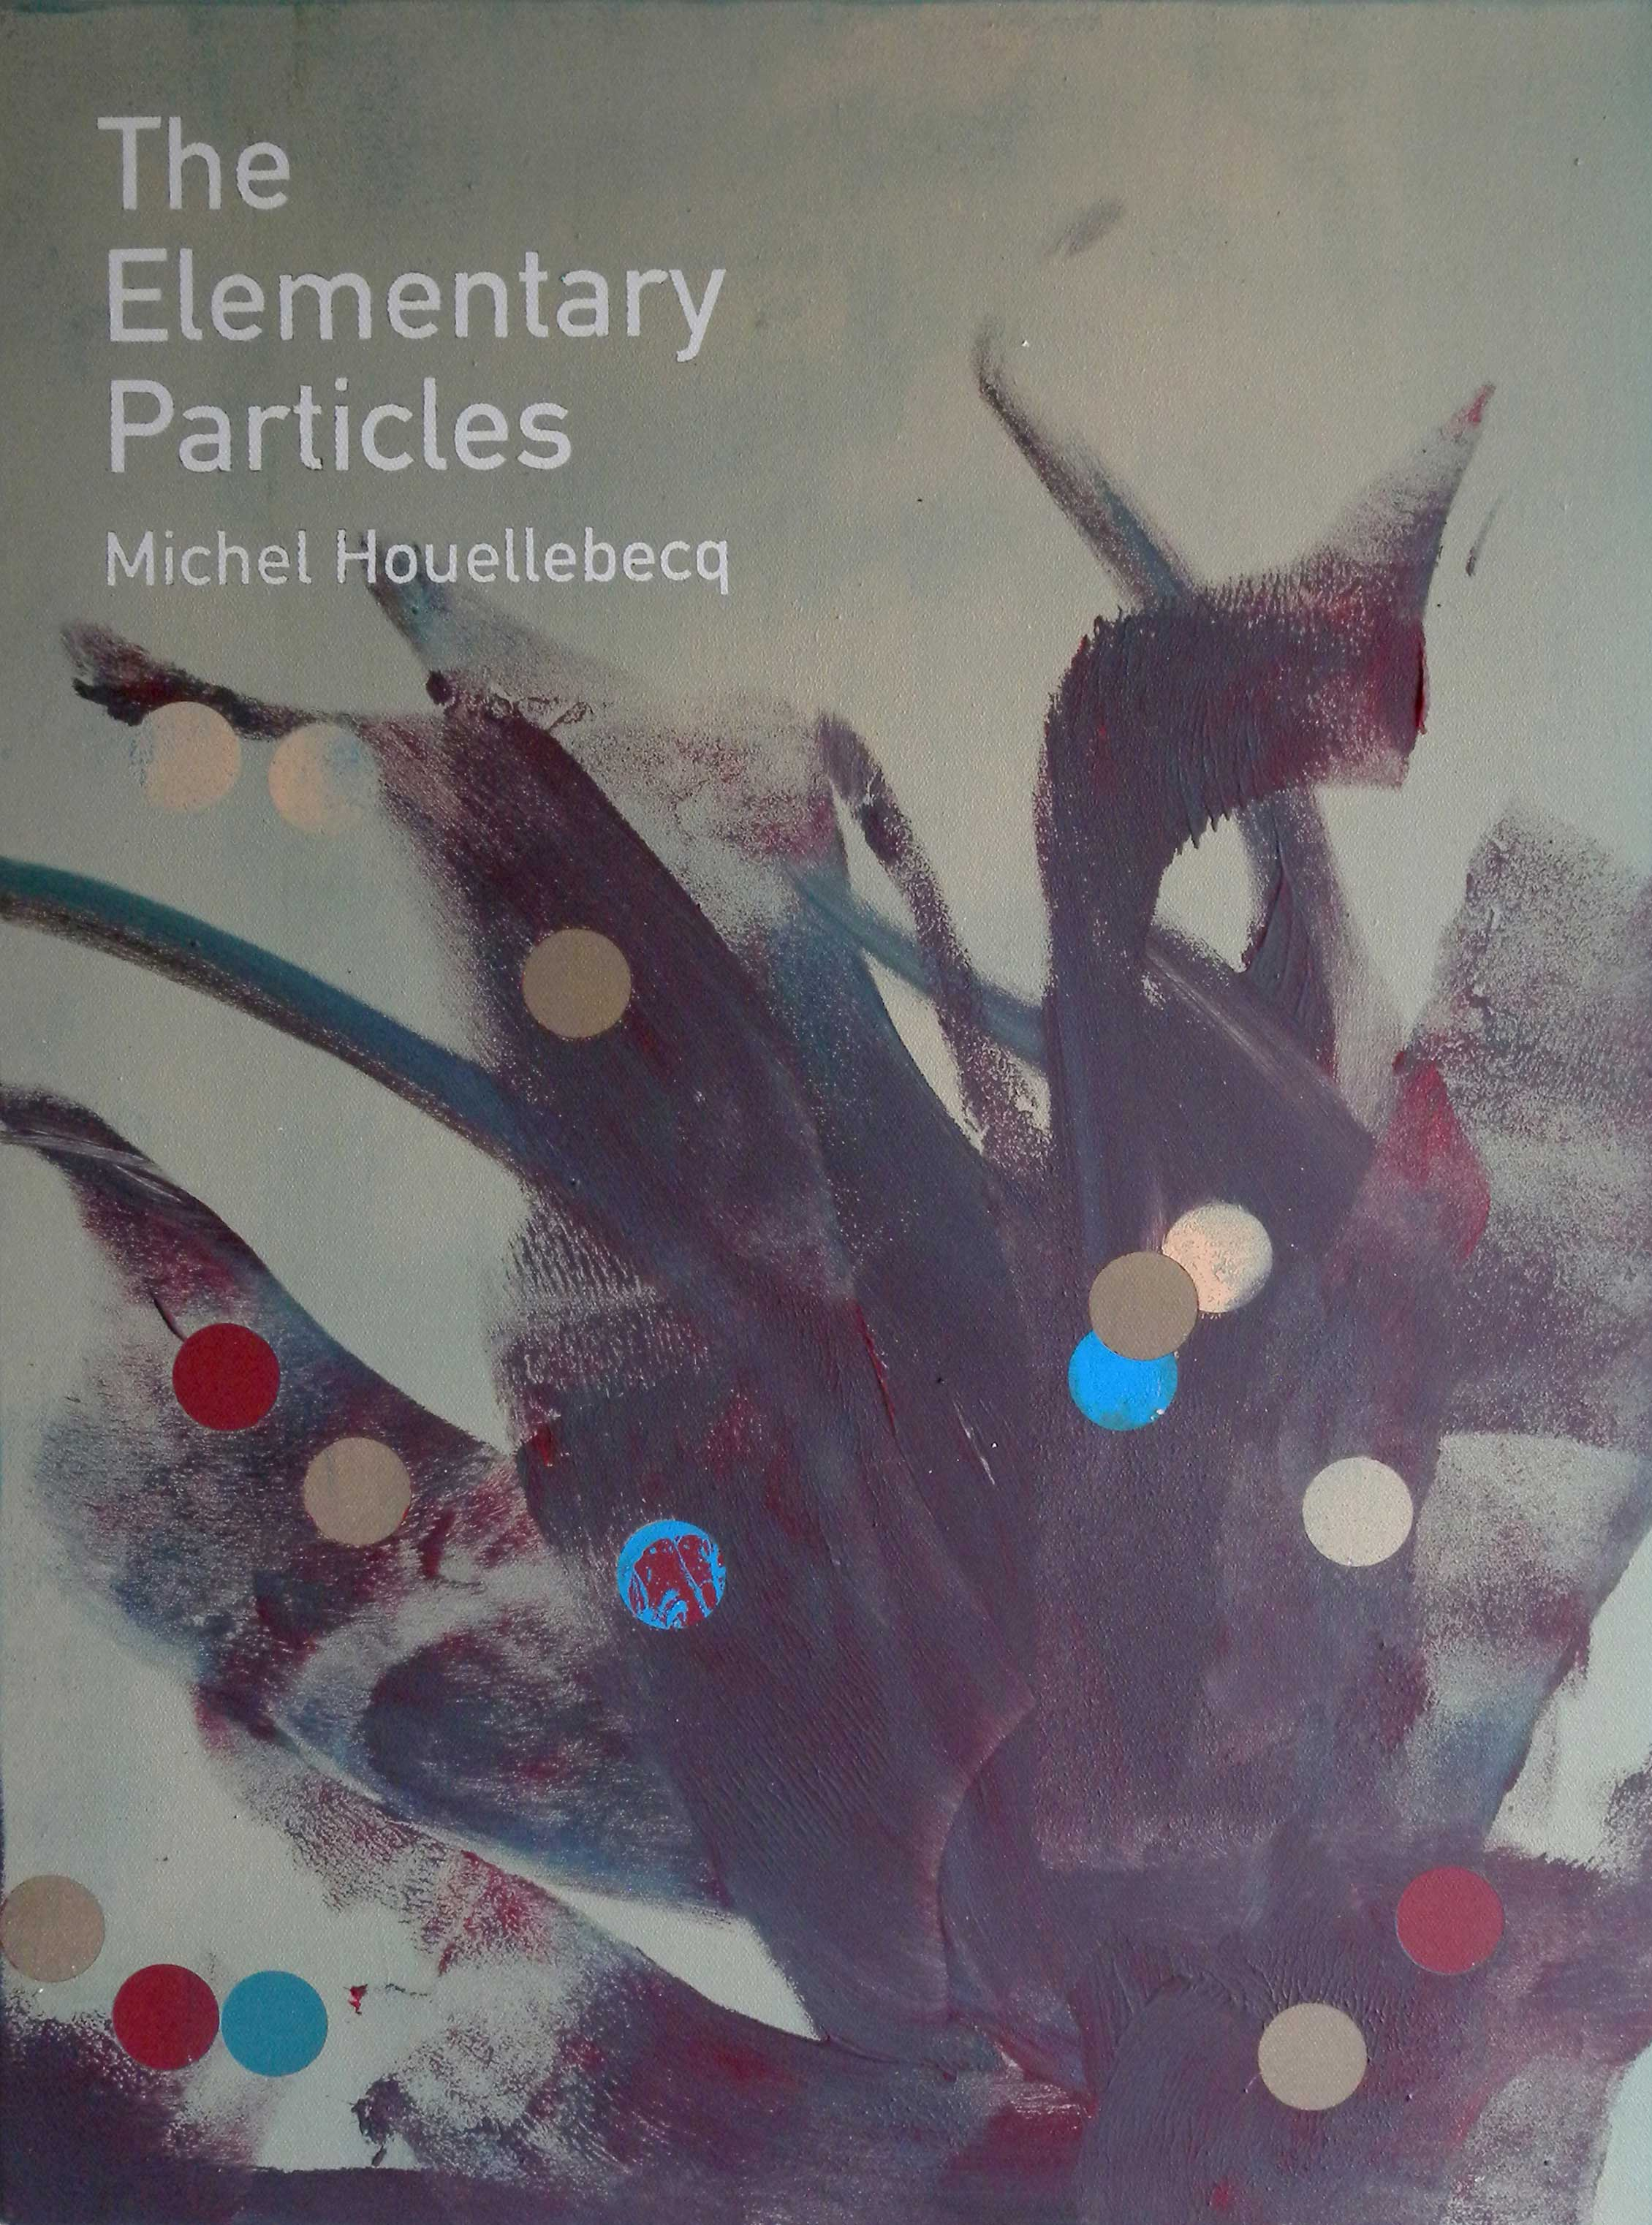 Heman CHONG  The Elementary Particles / Michel Houellebecq  Acrylic on canvas H61 x W46 x D3.5 cm